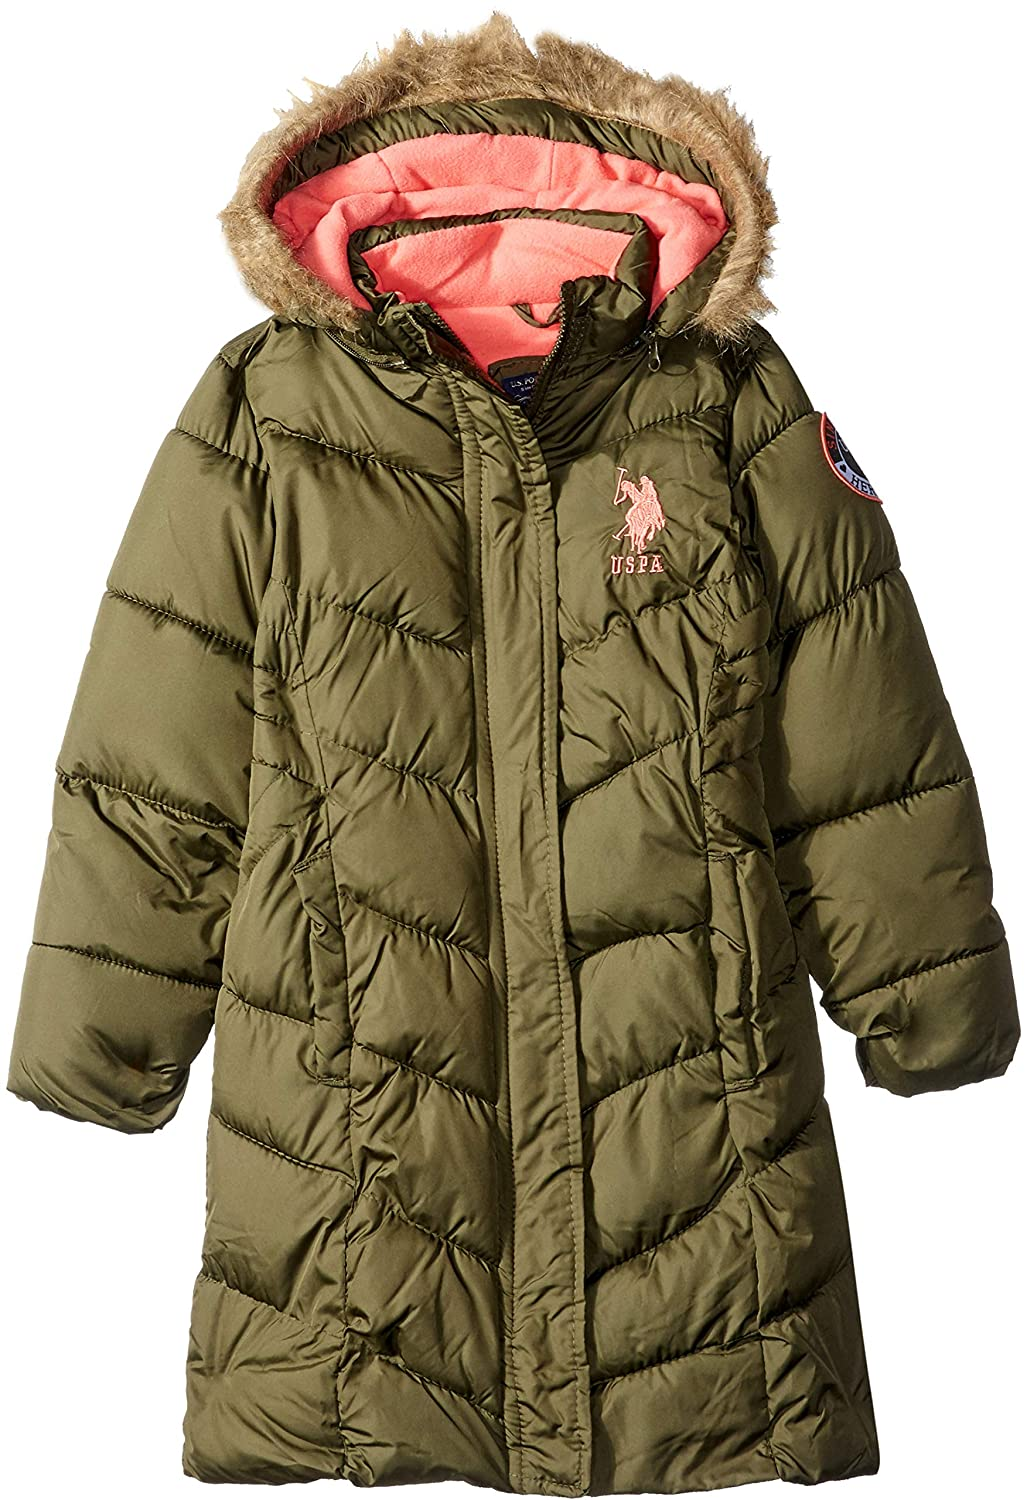 U.S. Polo Assn. Girls' Long Bubble Jacket US Polo Association O_UC24H